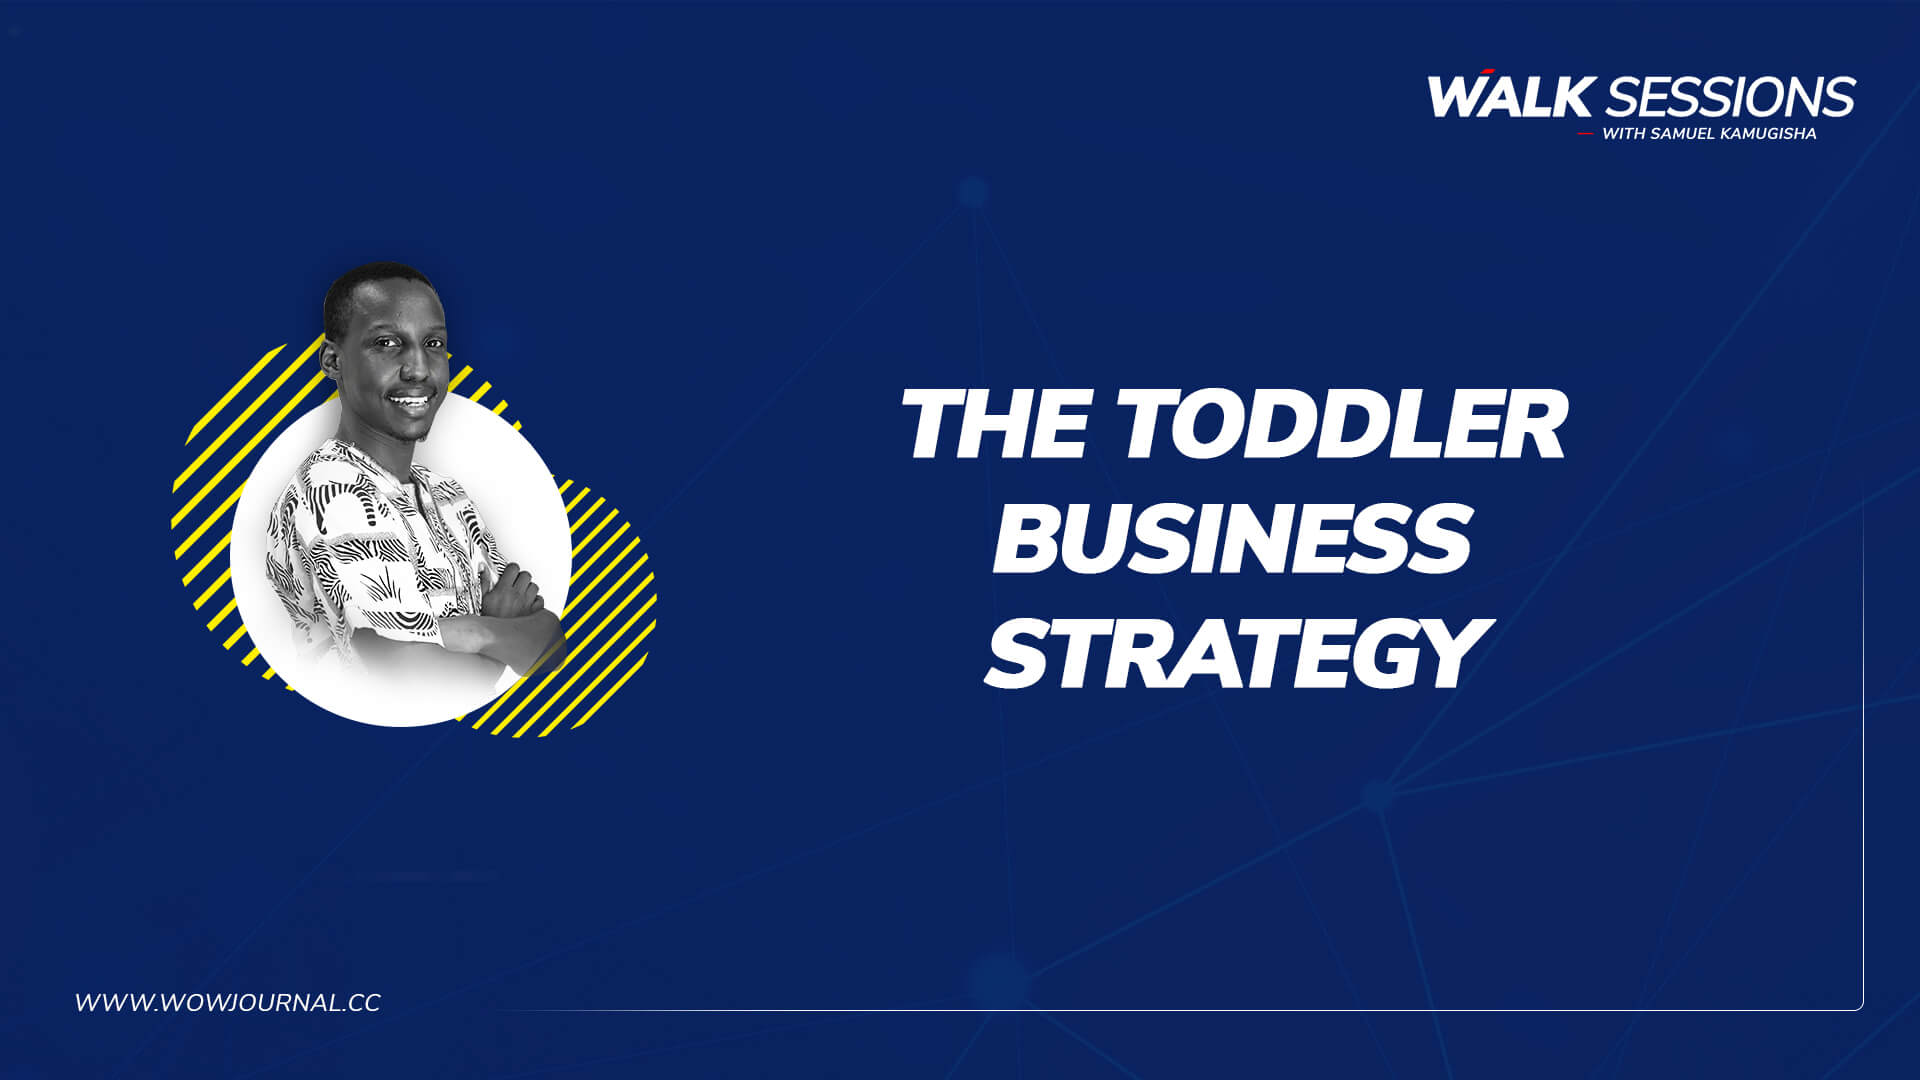 Walksessions - Toddler Business Strategy